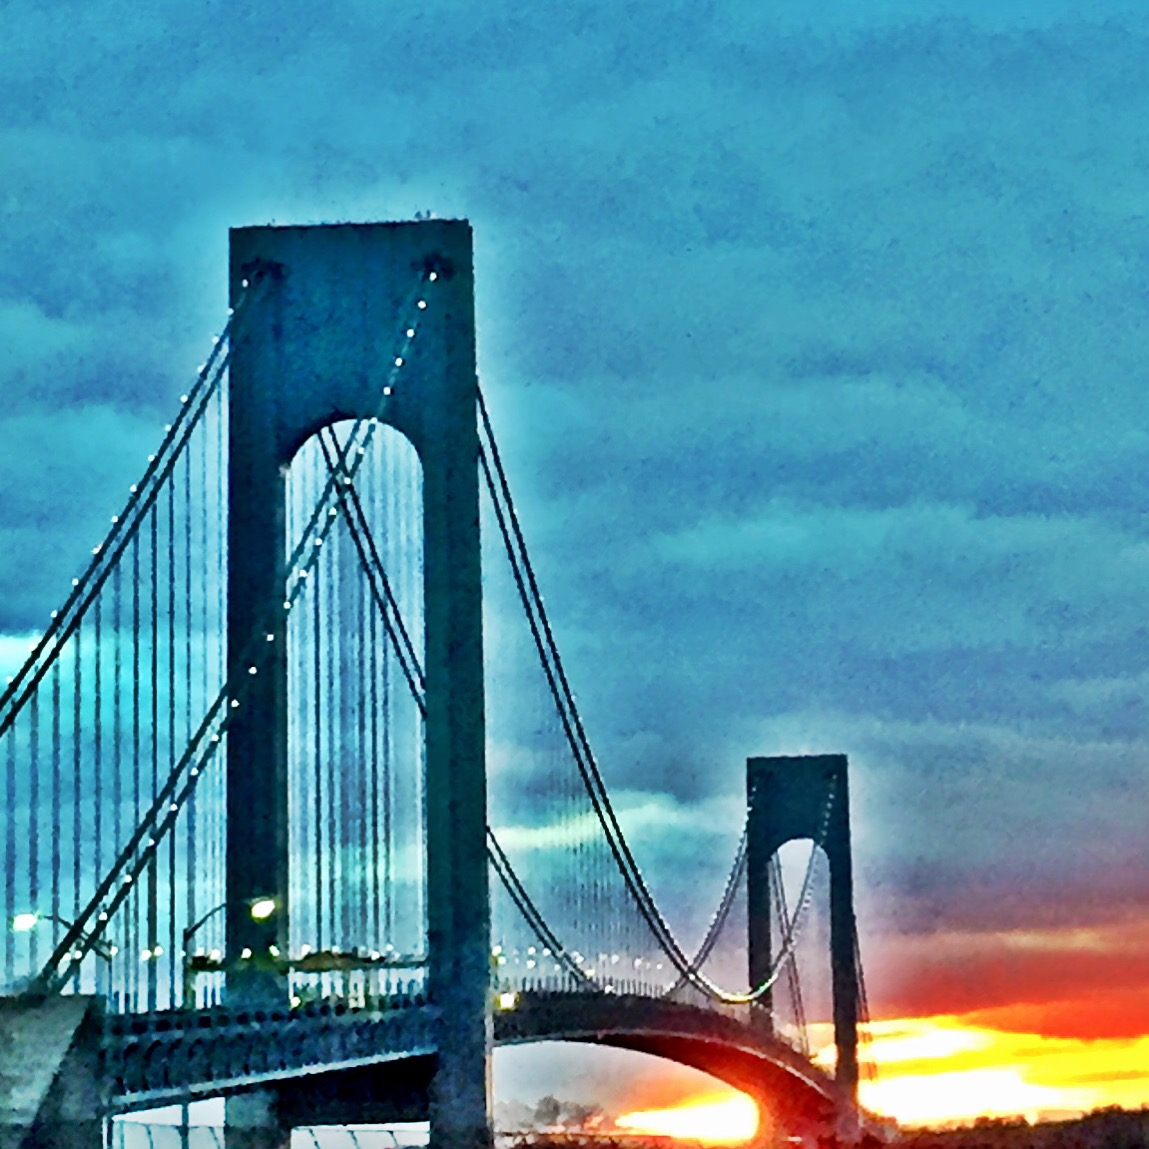 Verazzano Bridge Brooklyn, NY